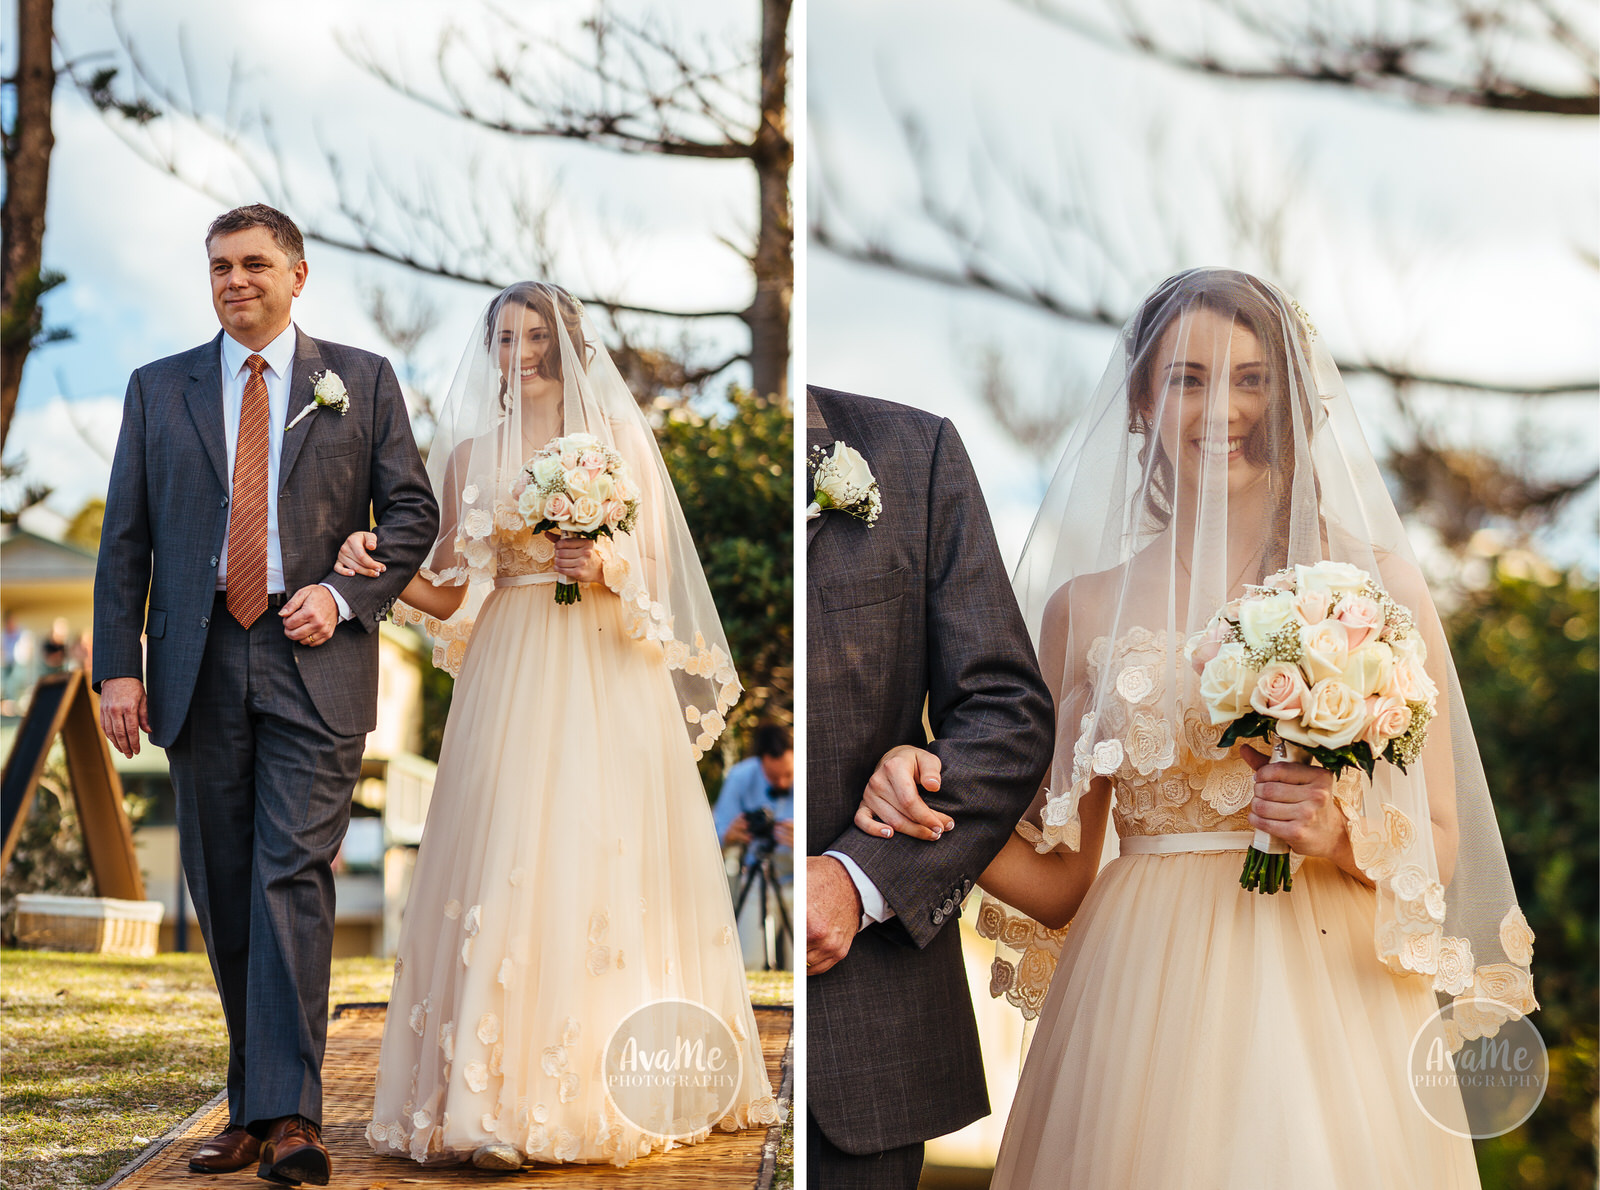 hannah-seungwoo-kingscliff-wedding-story-5-1